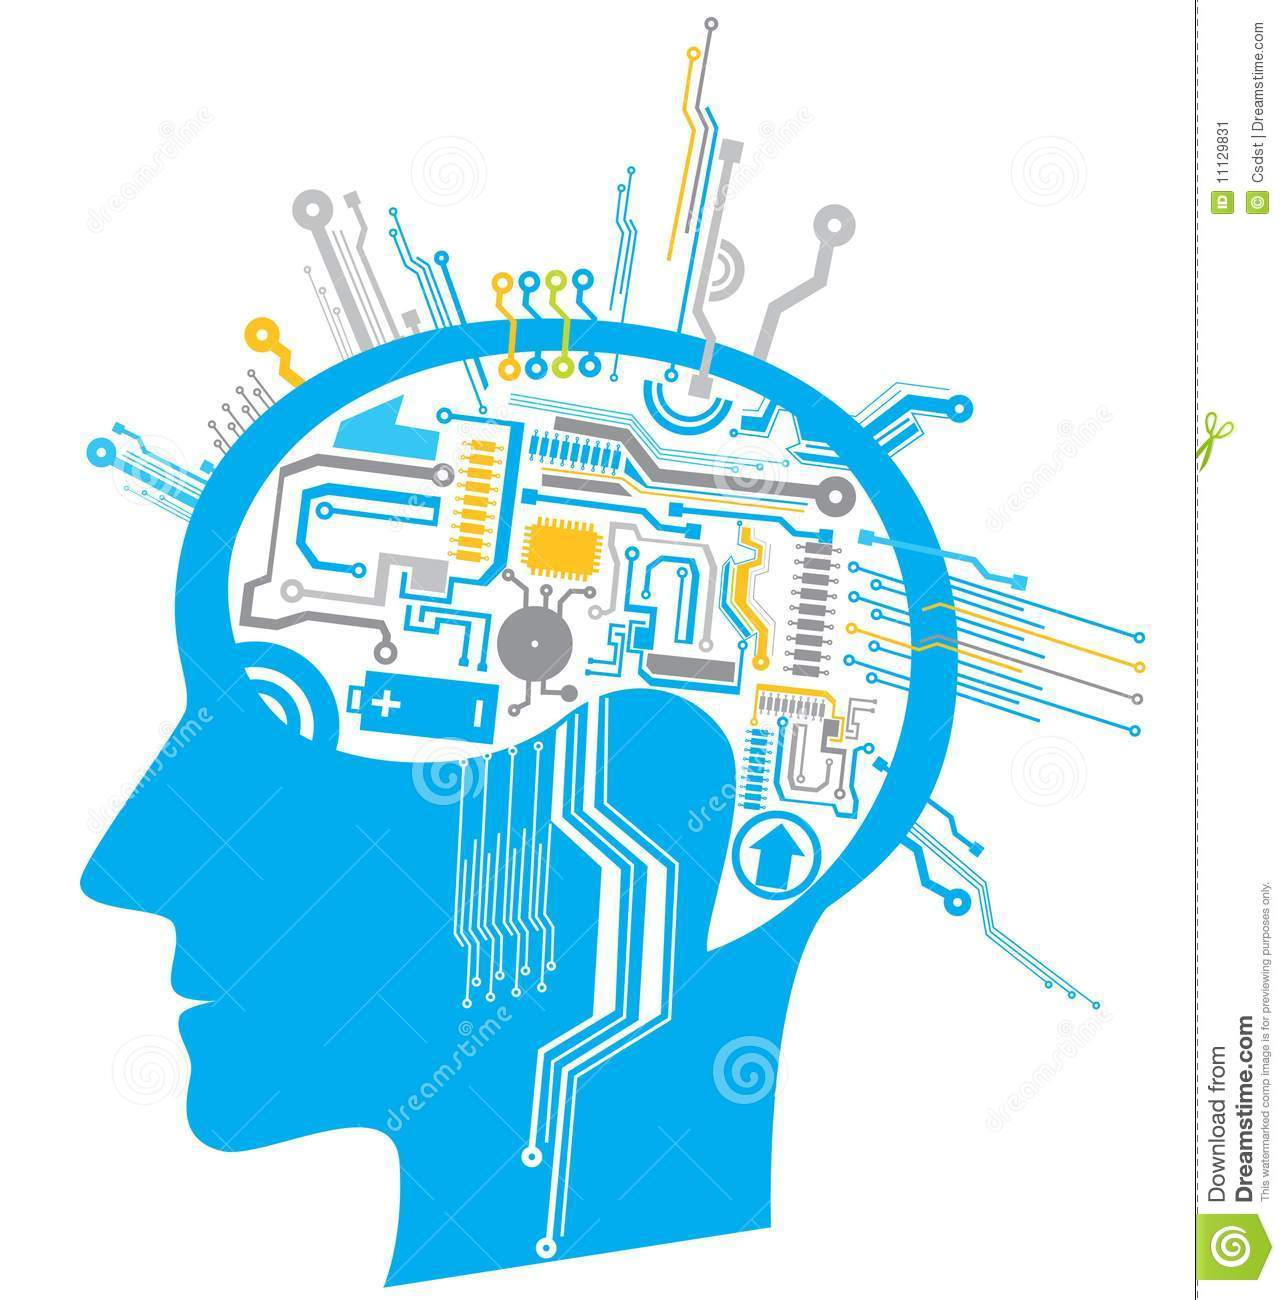 Circuit Brain Reusable : Brain circuit stock vector illustration of electronic